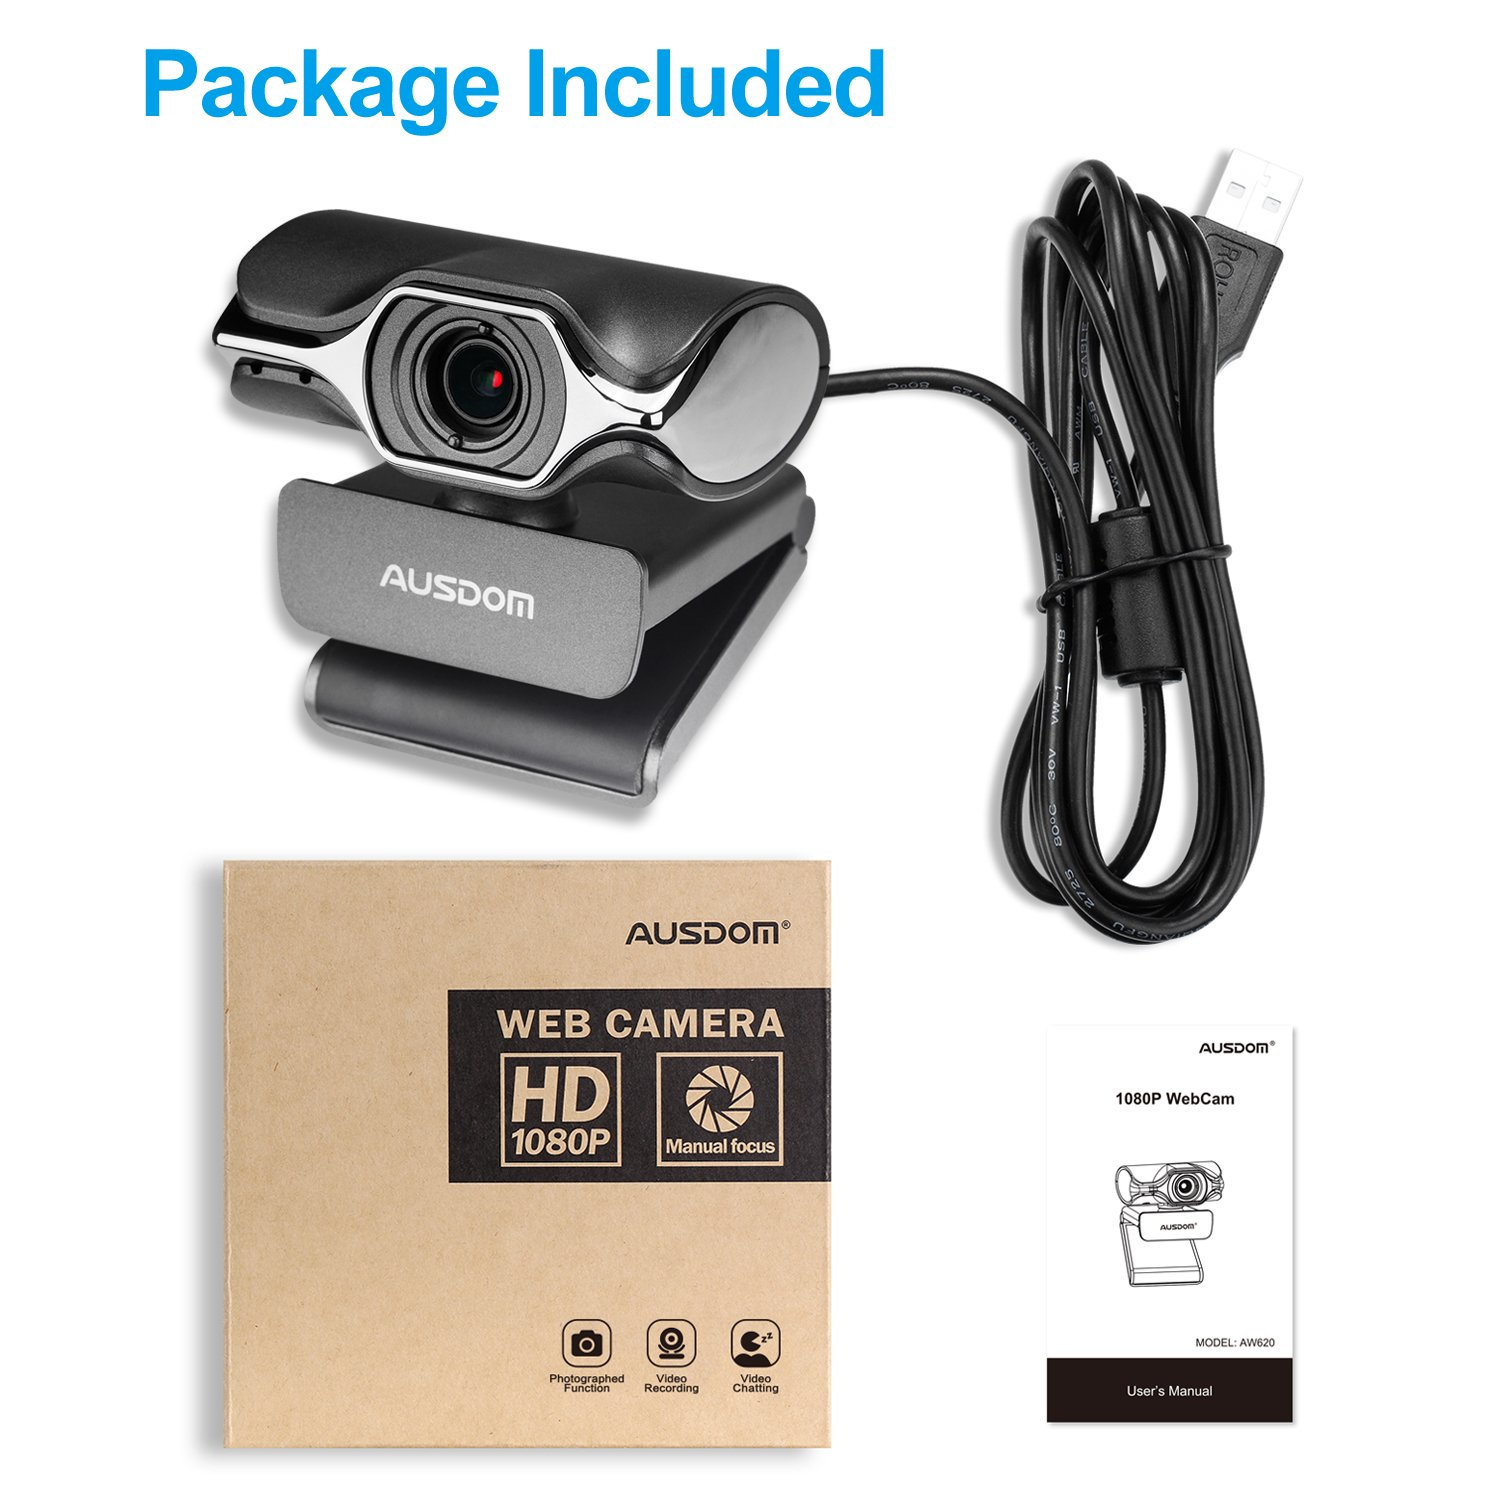 Stream Webcam Full 1080p HD Camera for Computer Web Camera with Built-in Noise Reduction Microphone PC or Laptop Camera for OBS Twitch Skype YouTube